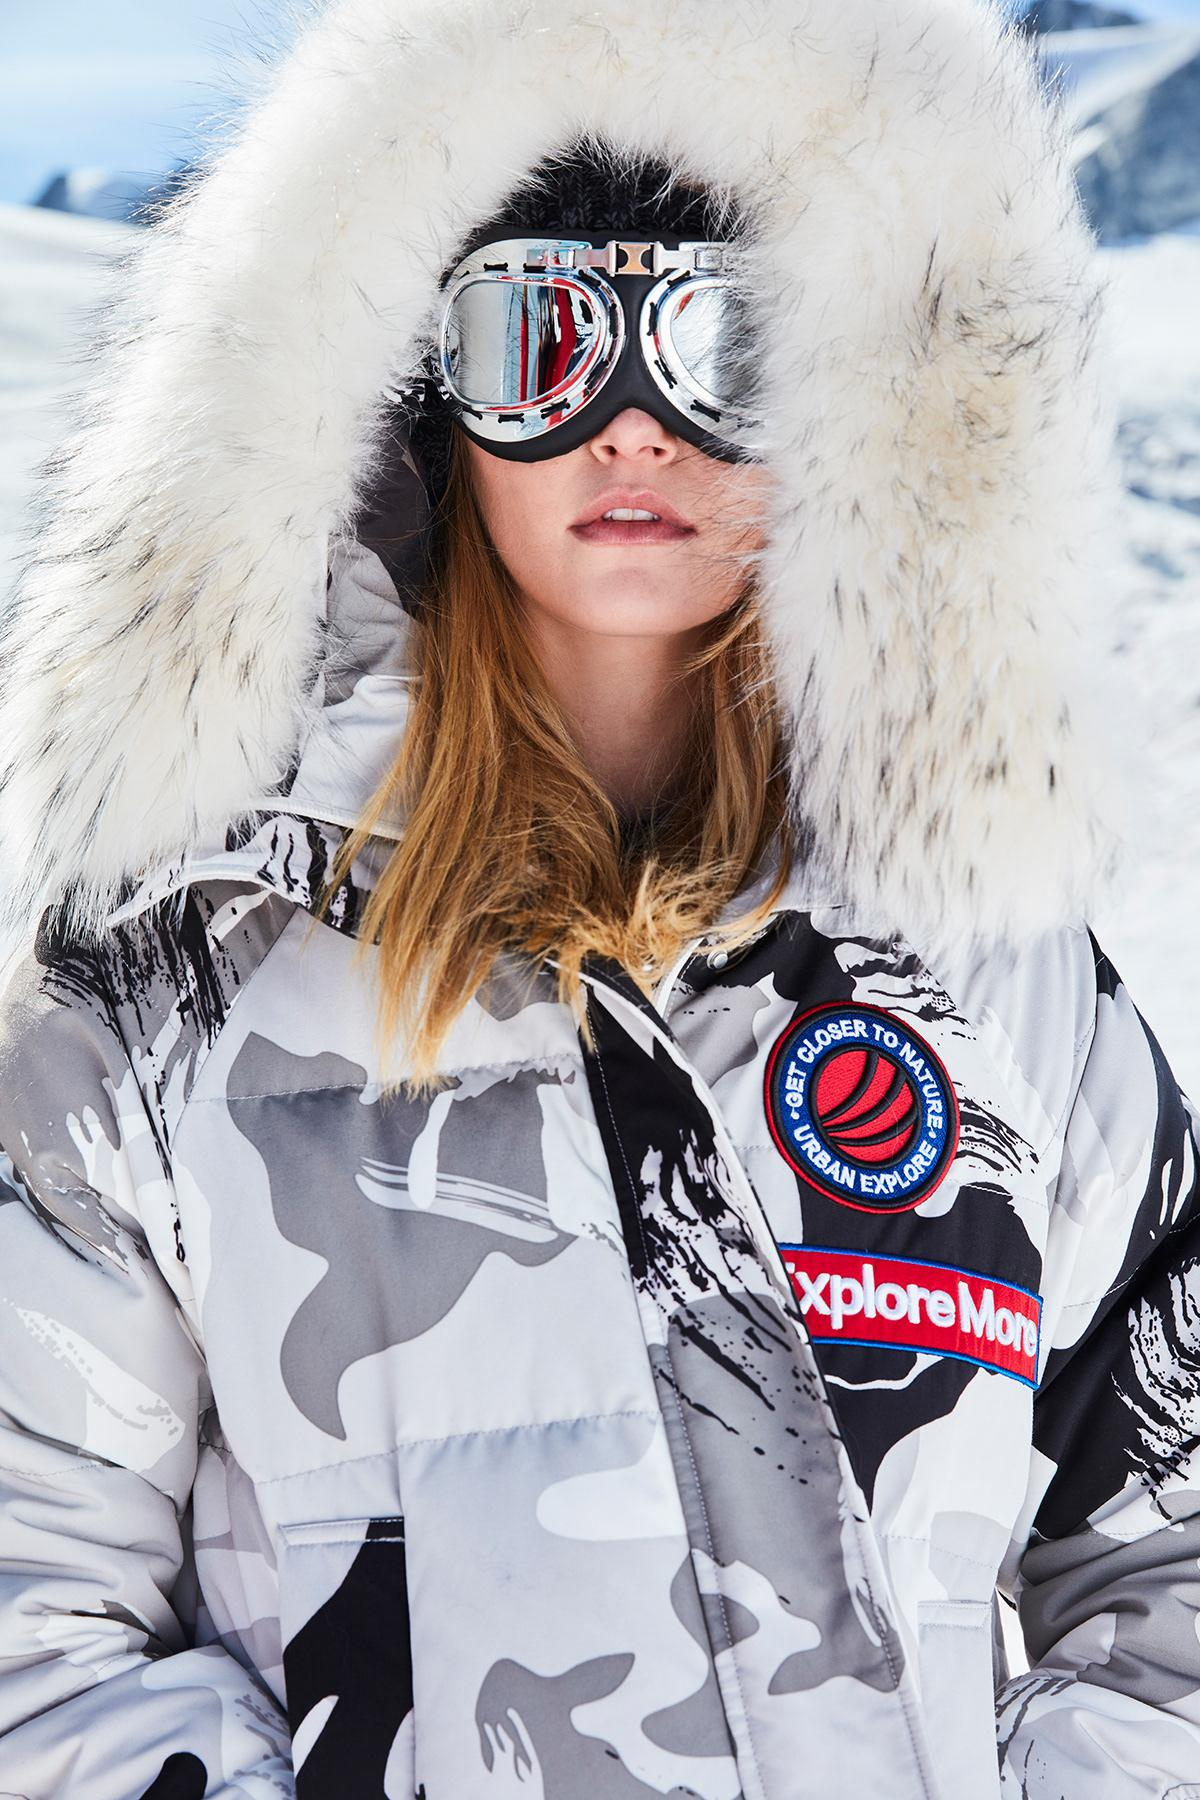 Beautiful white winter jacket with fur hood will make you look like professional skier